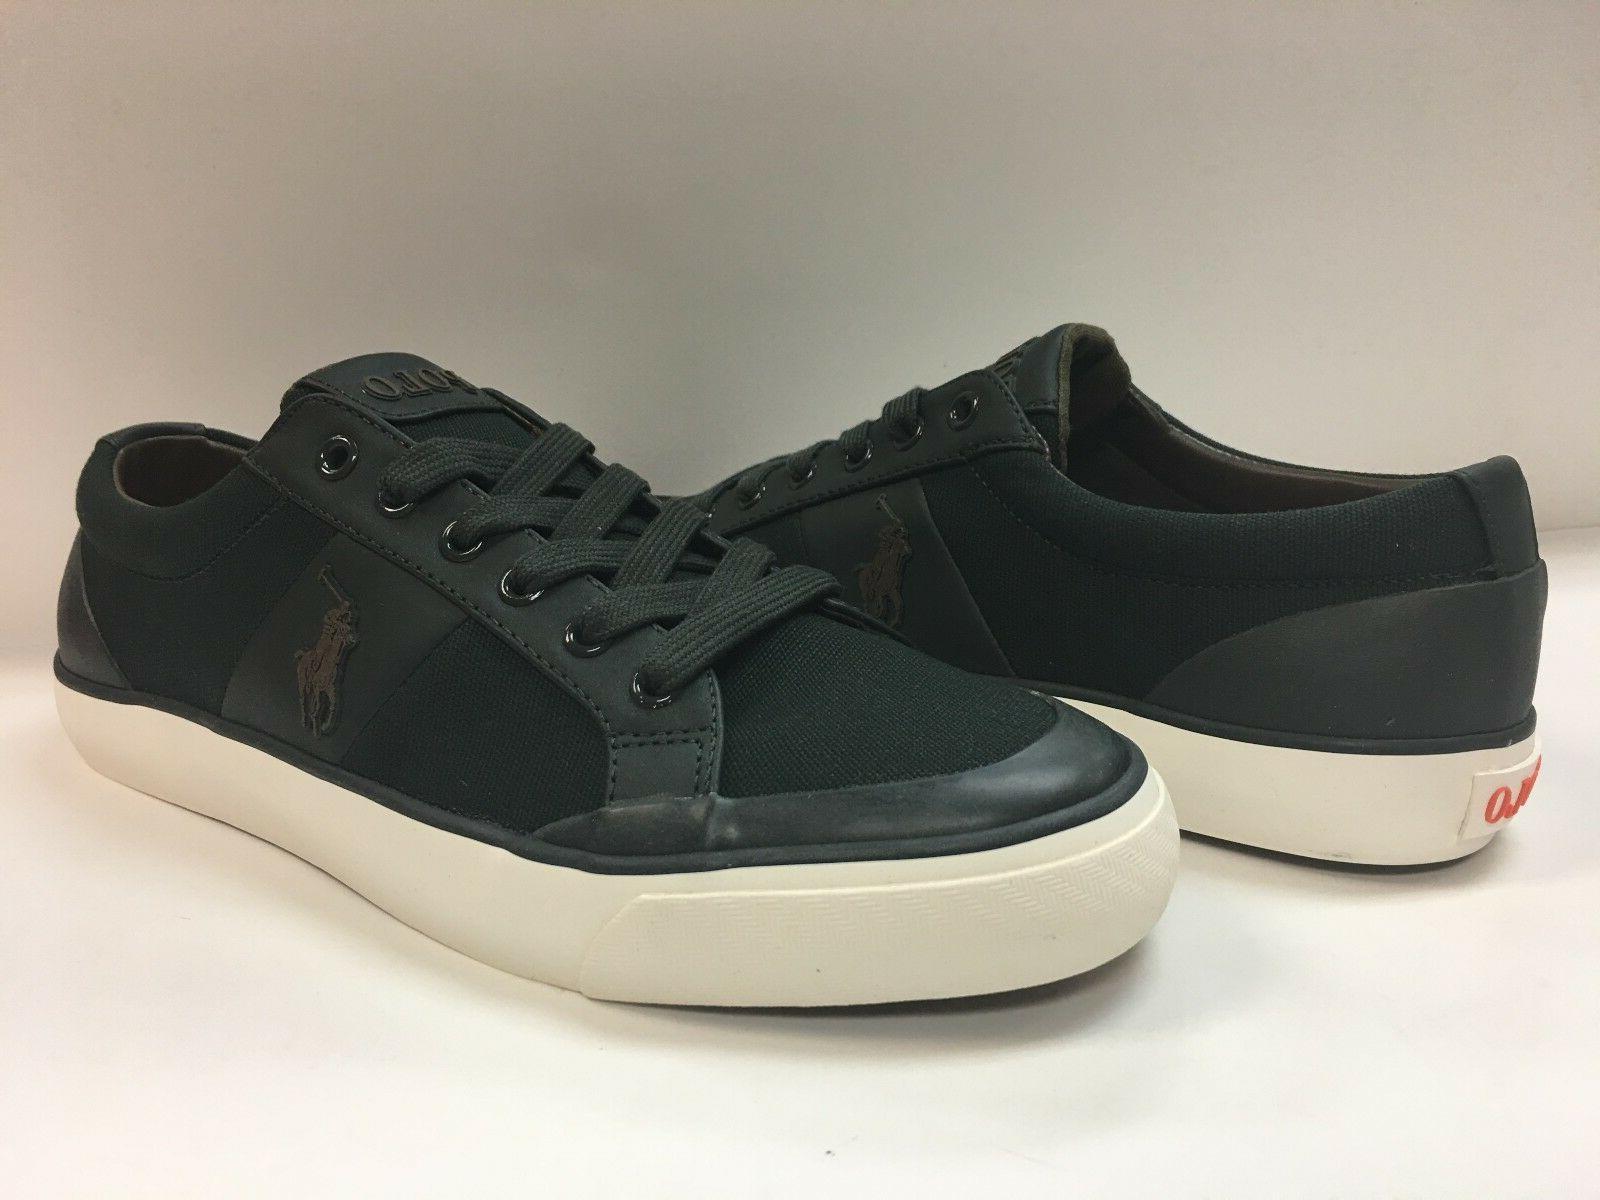 Polo Ralph Lauren Men's Ian Canvas Fashion Sneakers.